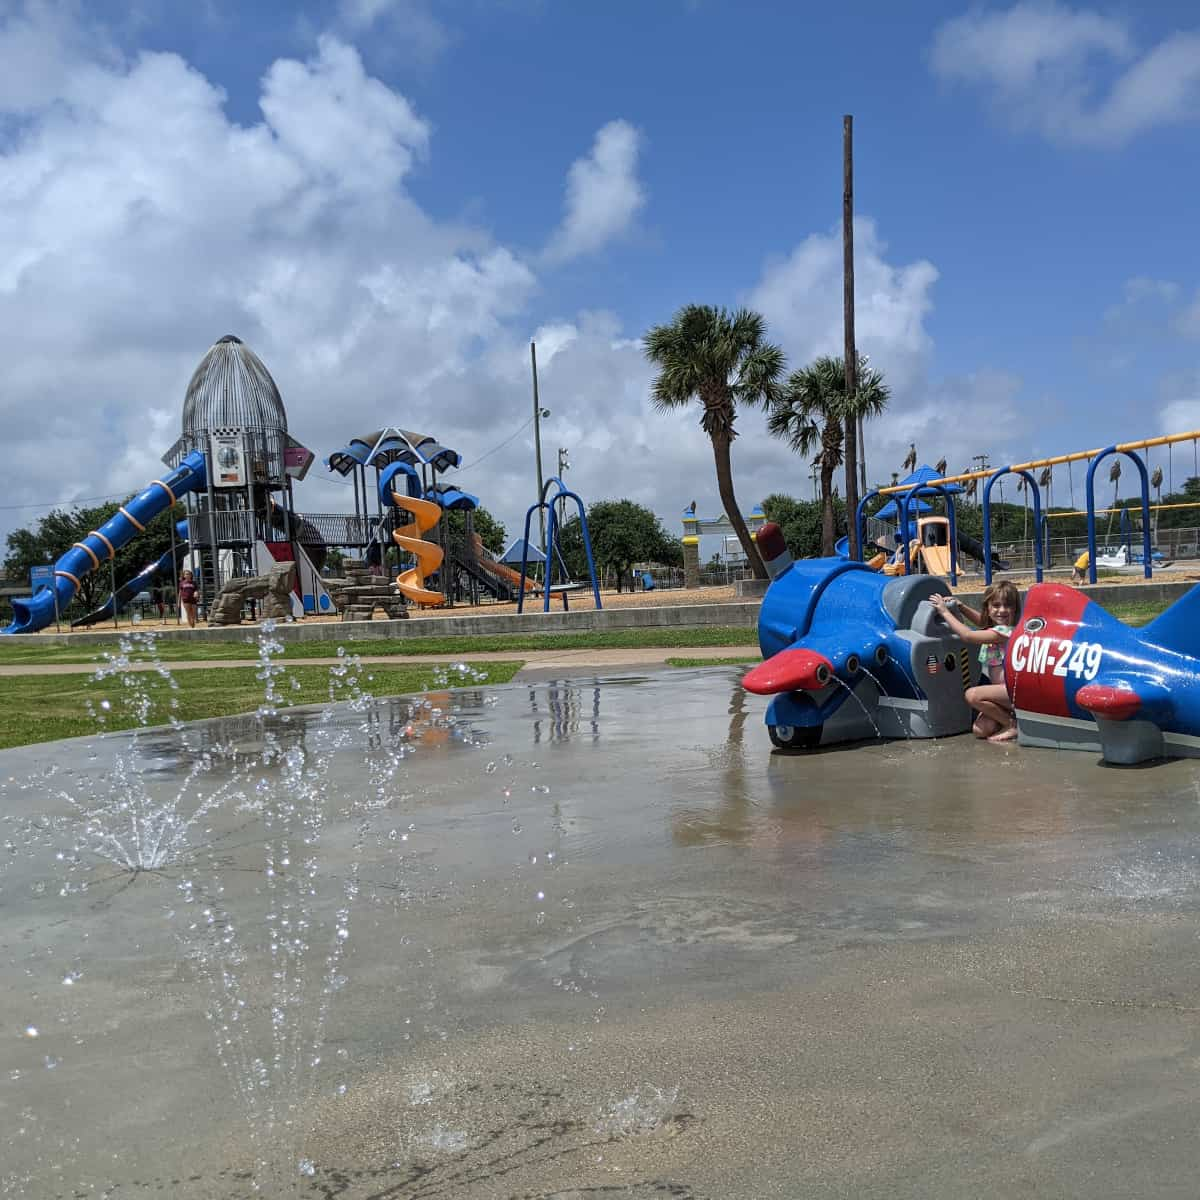 Splashpad and Space Shuttle at Flagship park